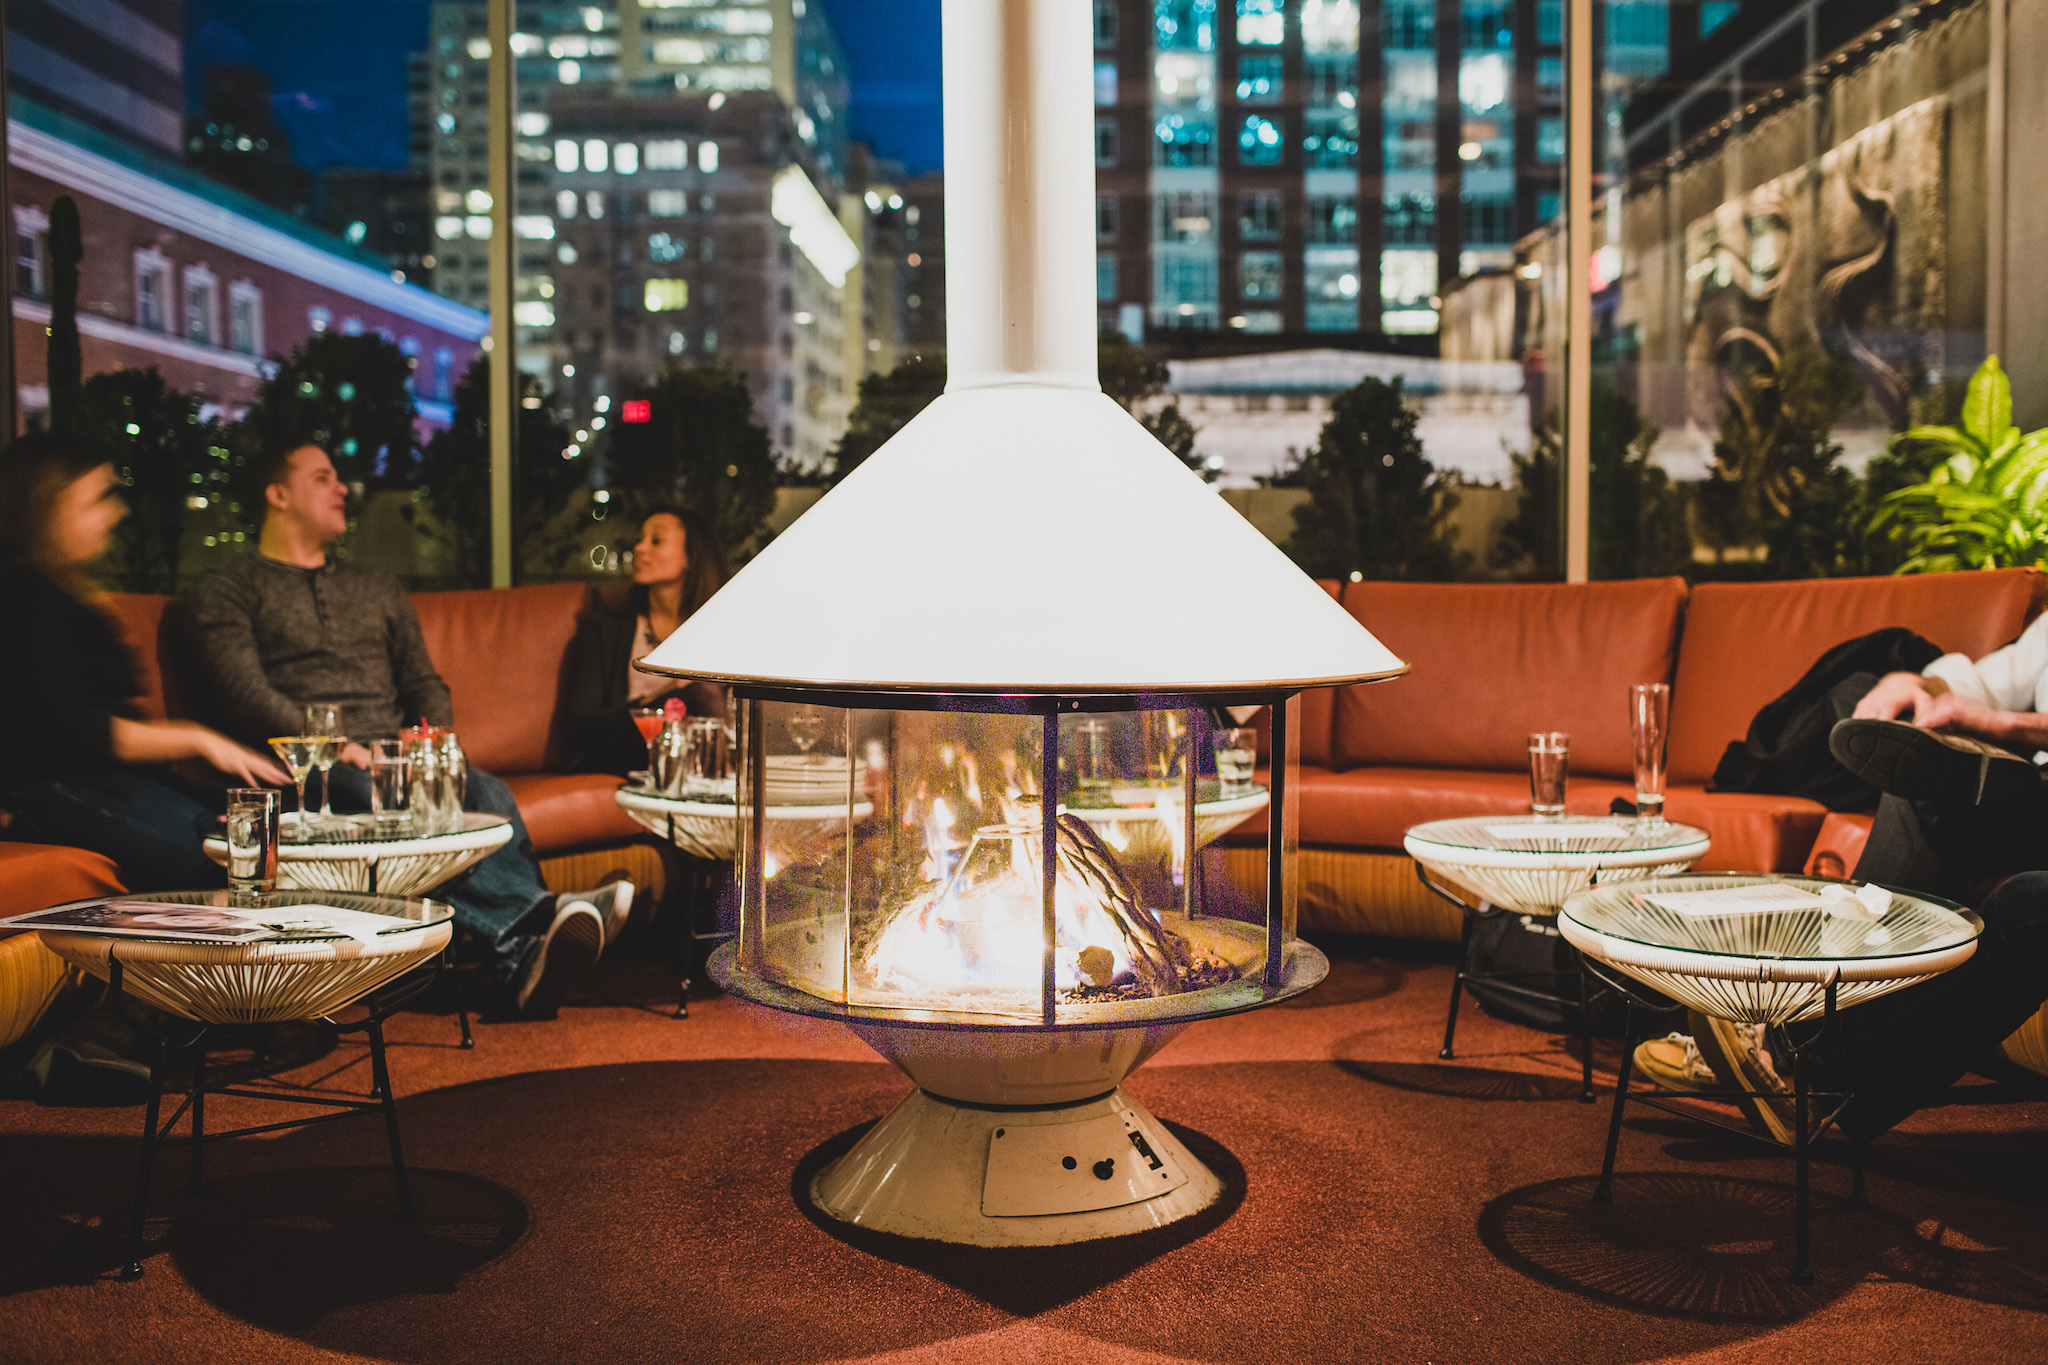 Awesome rooftop bars to visit over the holidays